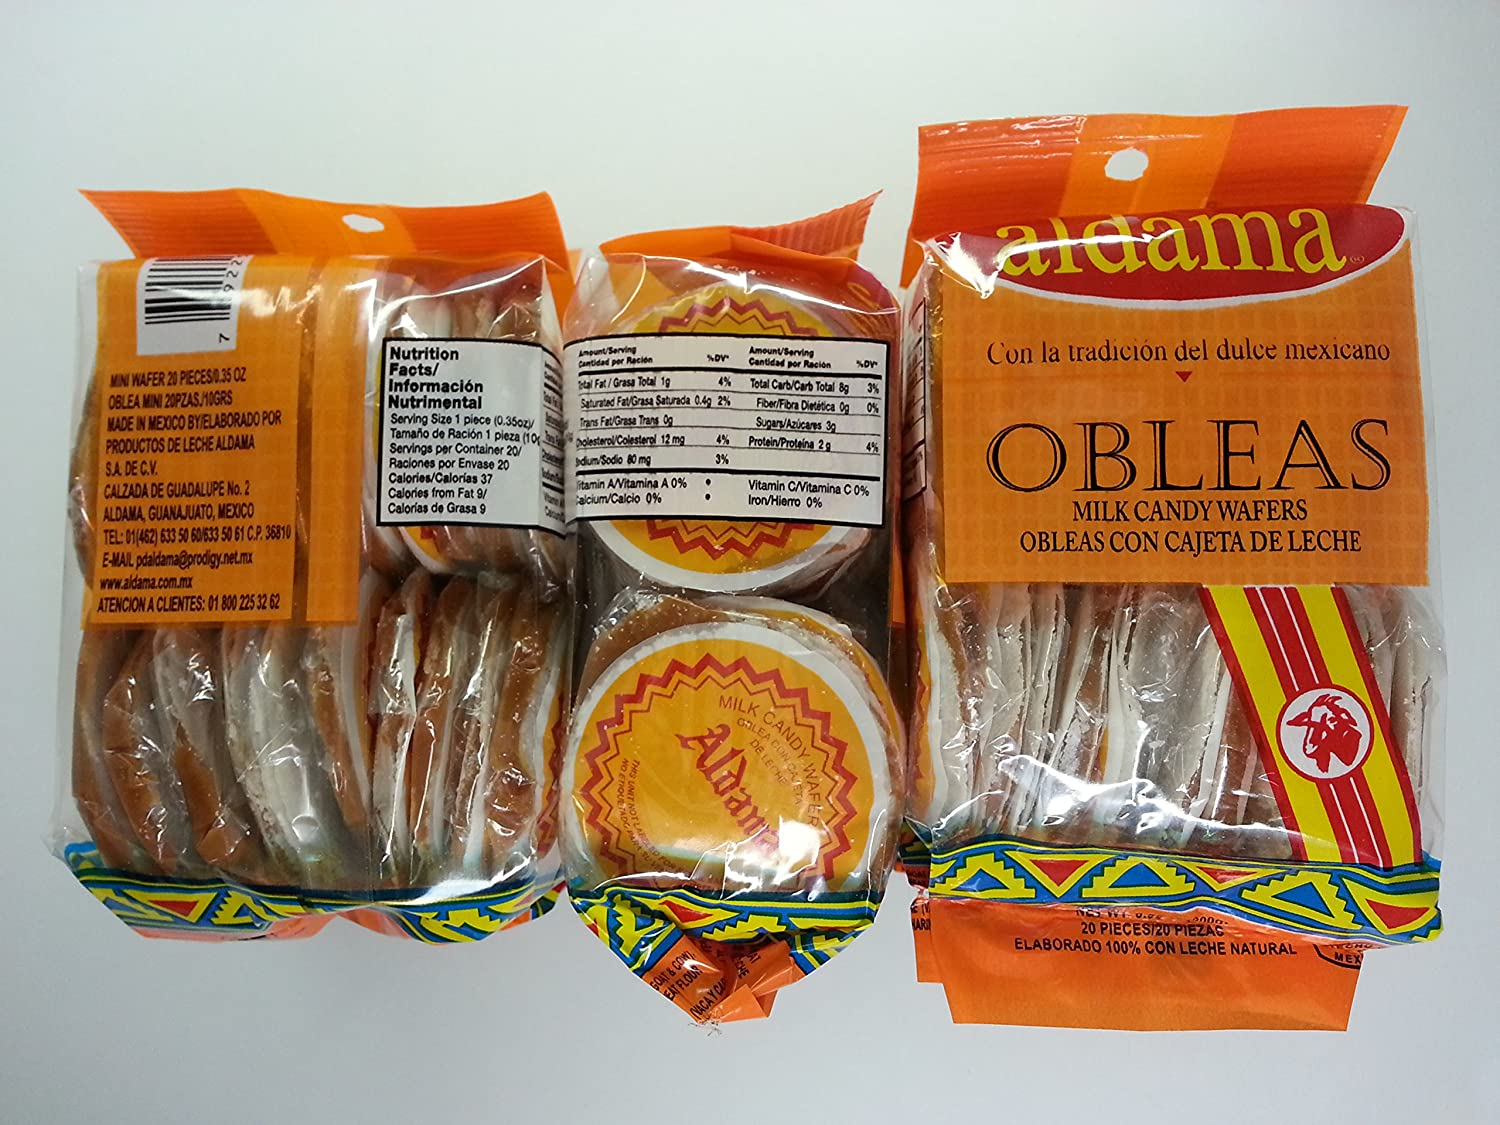 Amazon.com : Aldama Mini Obleas Con Cajeta (Milk Candy Waffles) 60 pcs : Grocery & Gourmet Food